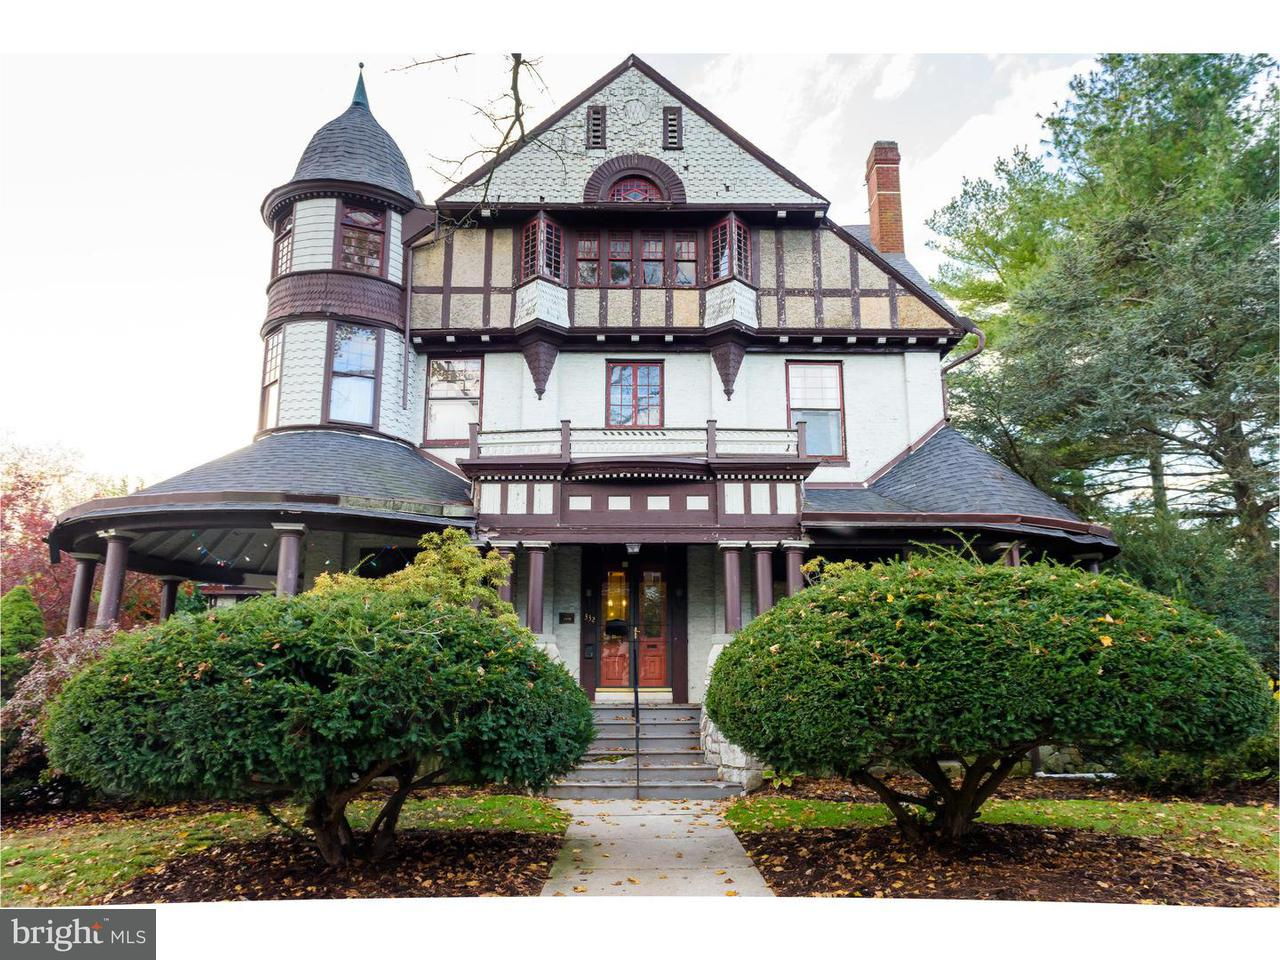 332 S Broad Kennett Square, PA 19348